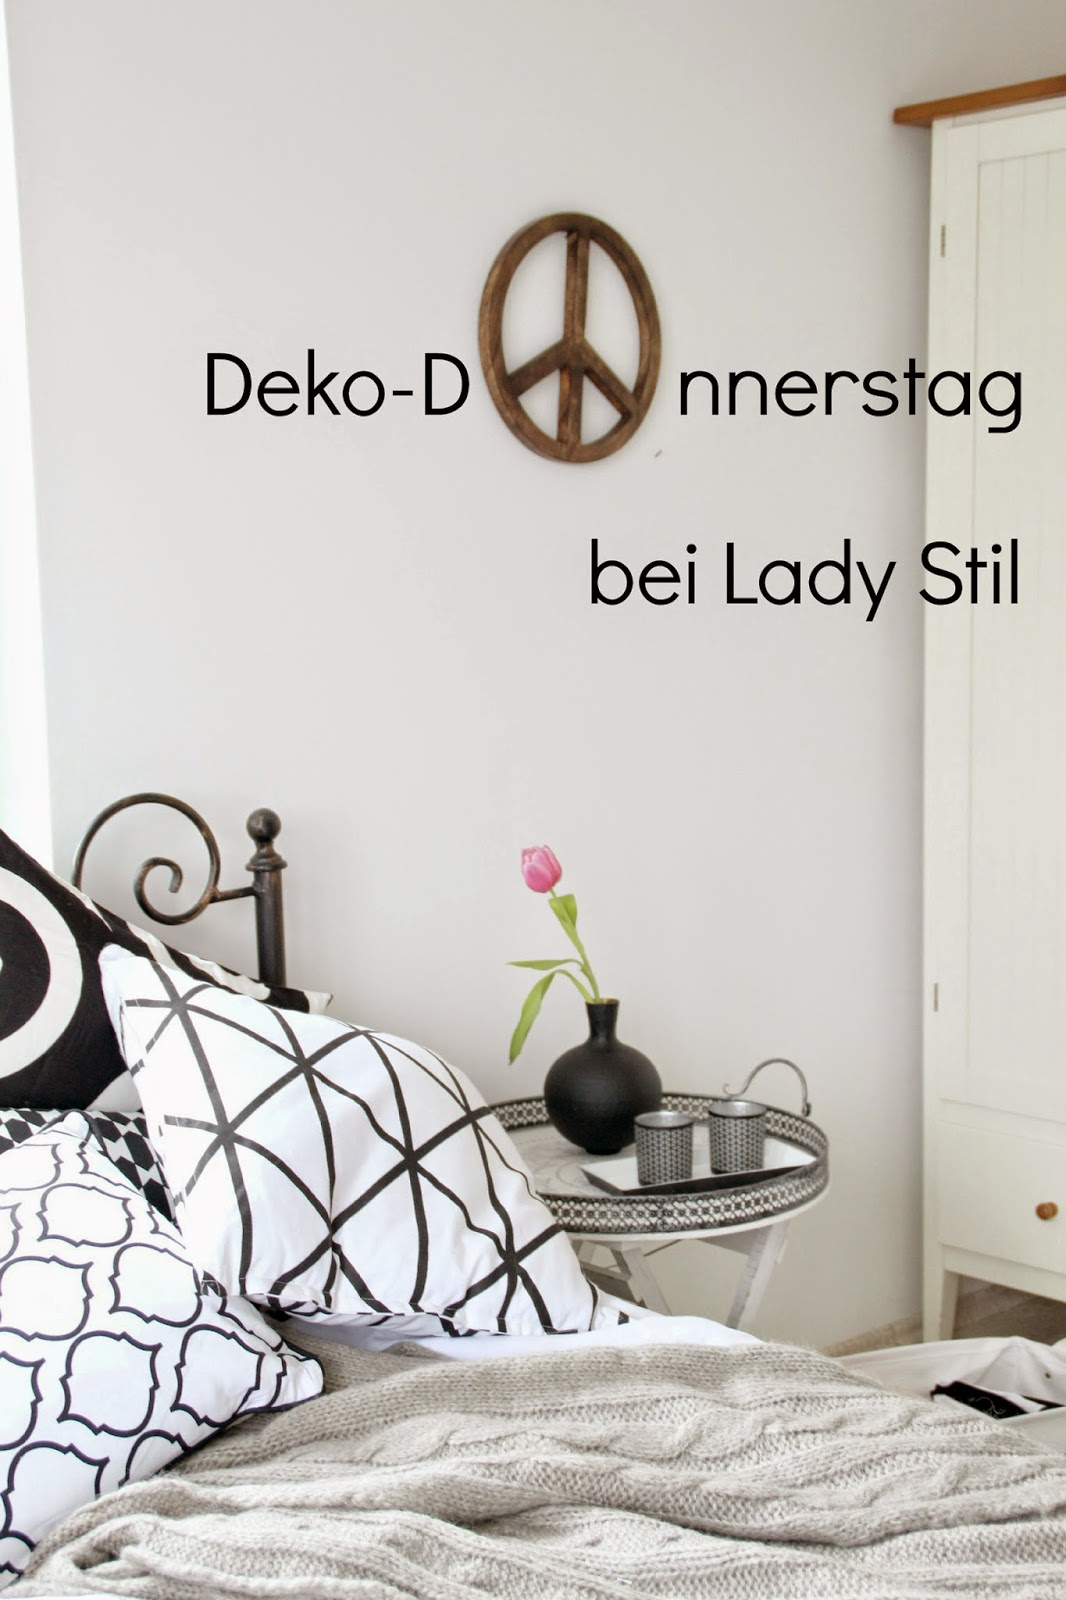 Deko-Donnerstag bei Lady Stil: